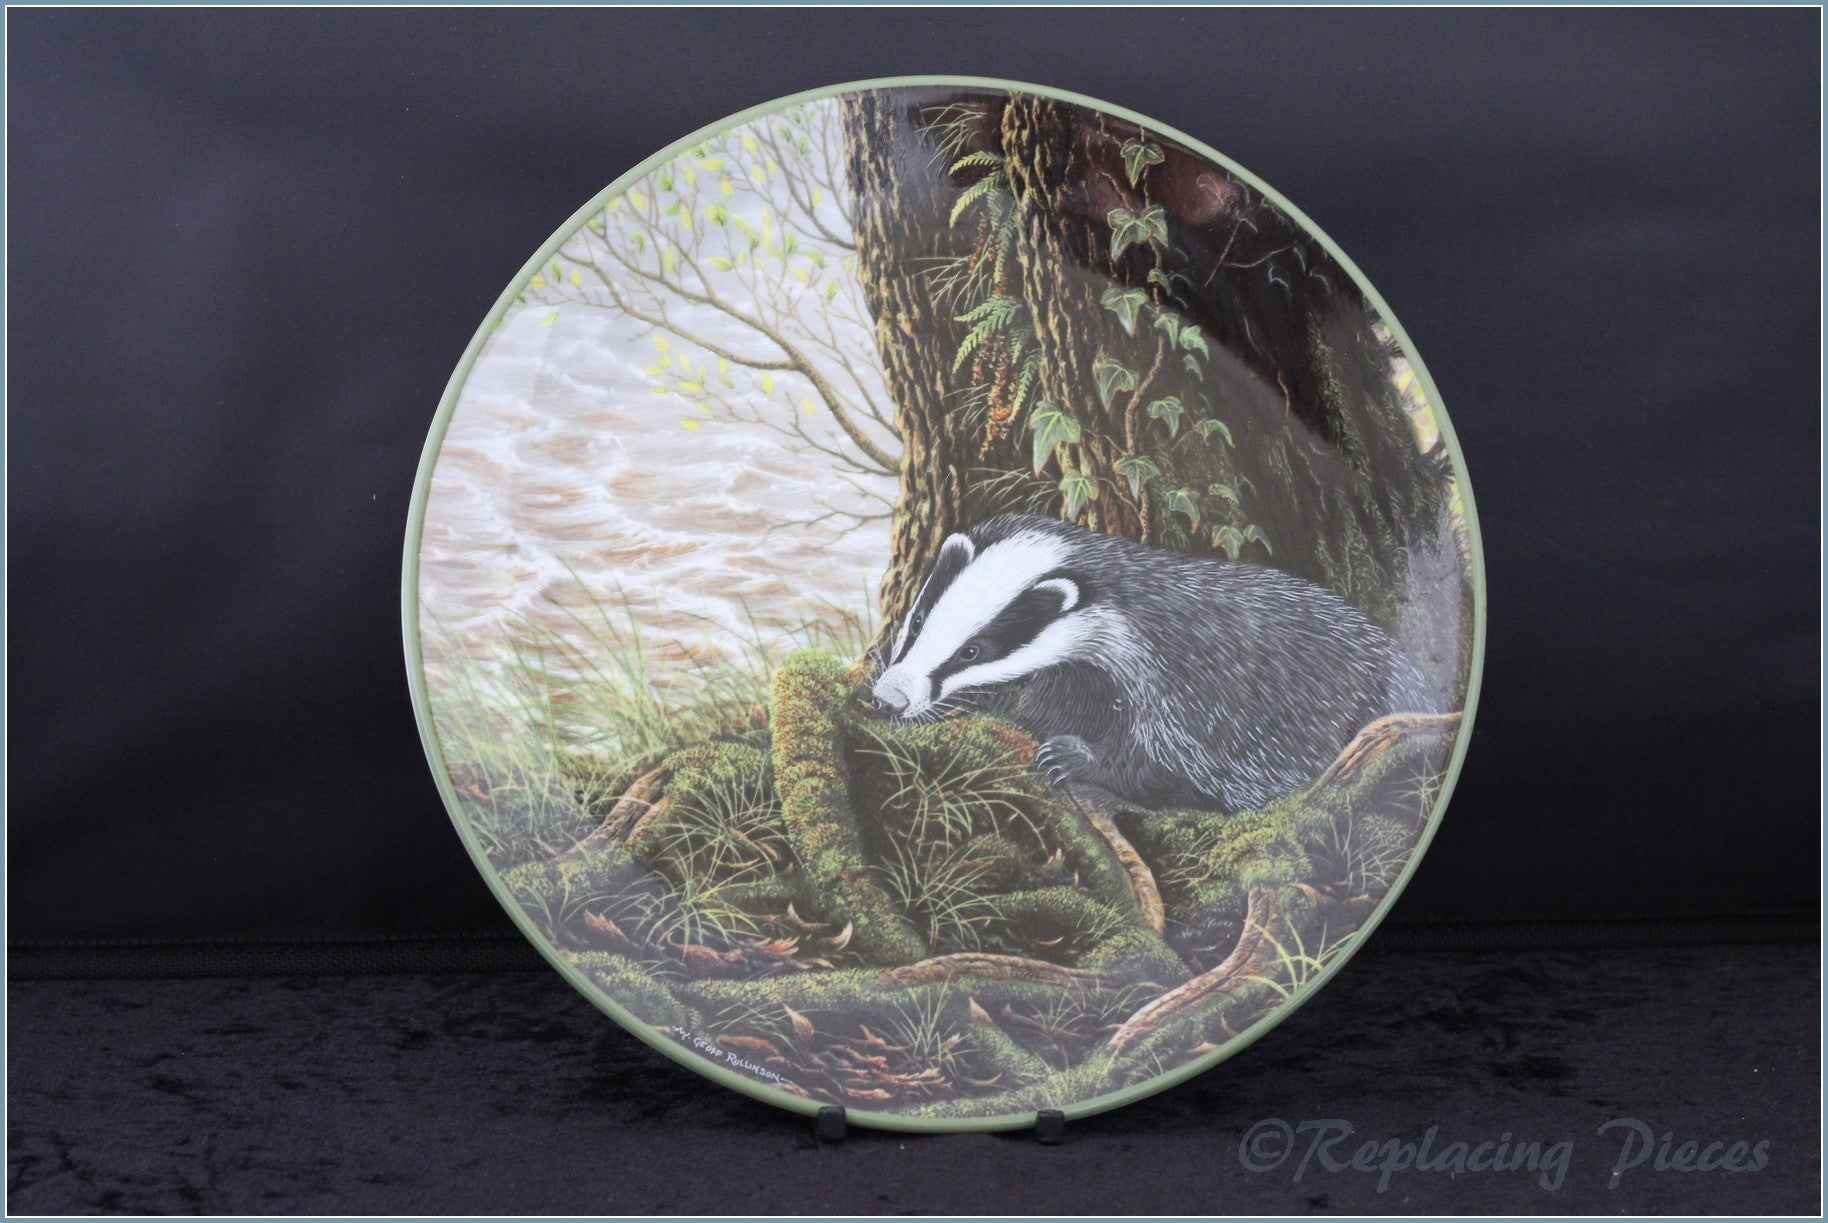 Royal Doulton - Rollinsons Portraits of Nature - The Badger On His Evening Prowl